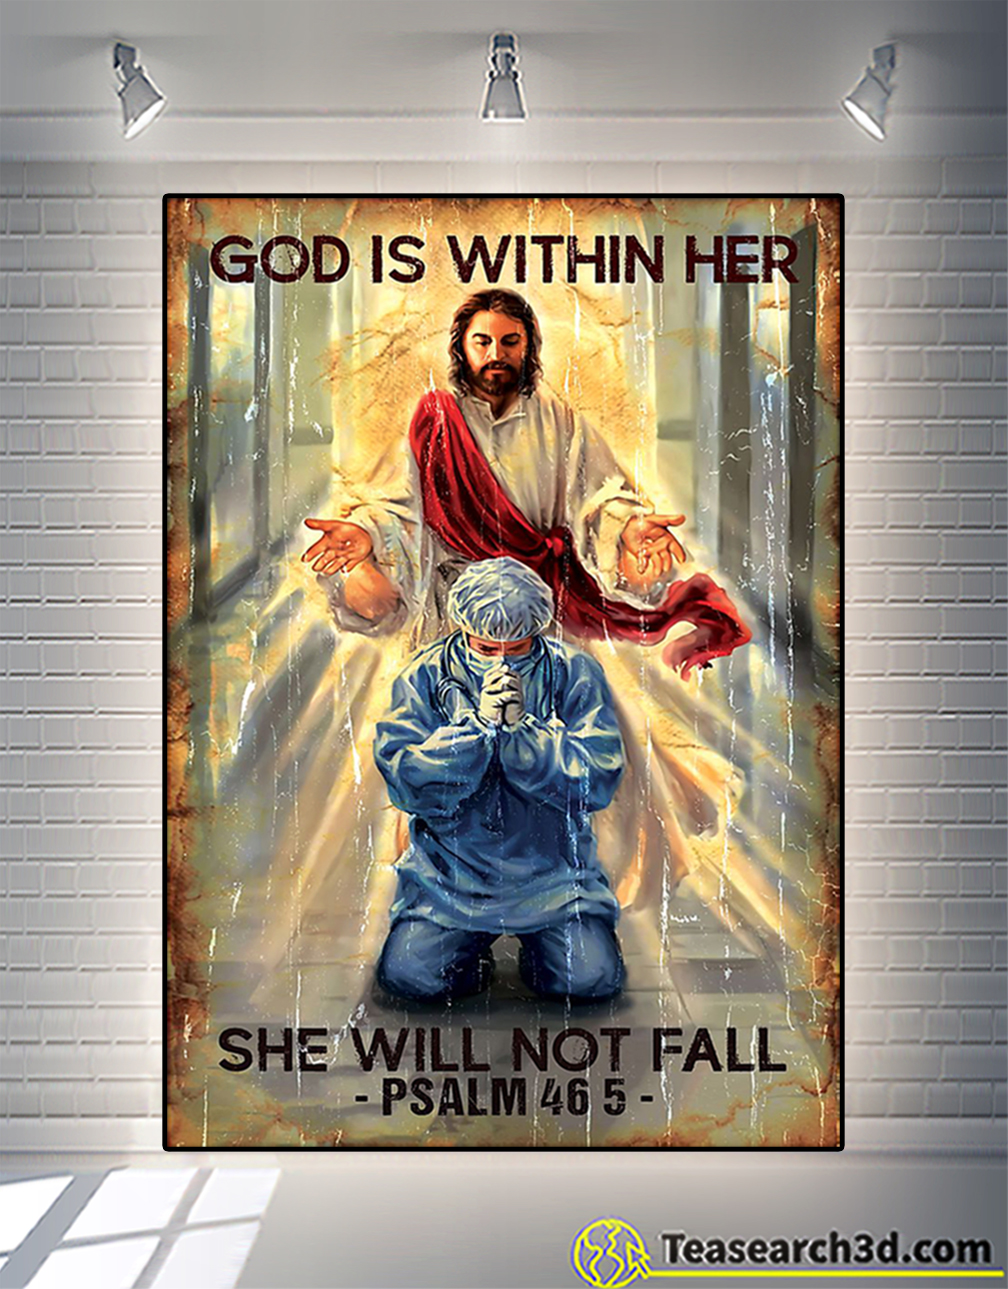 God is within her she will not fall poster